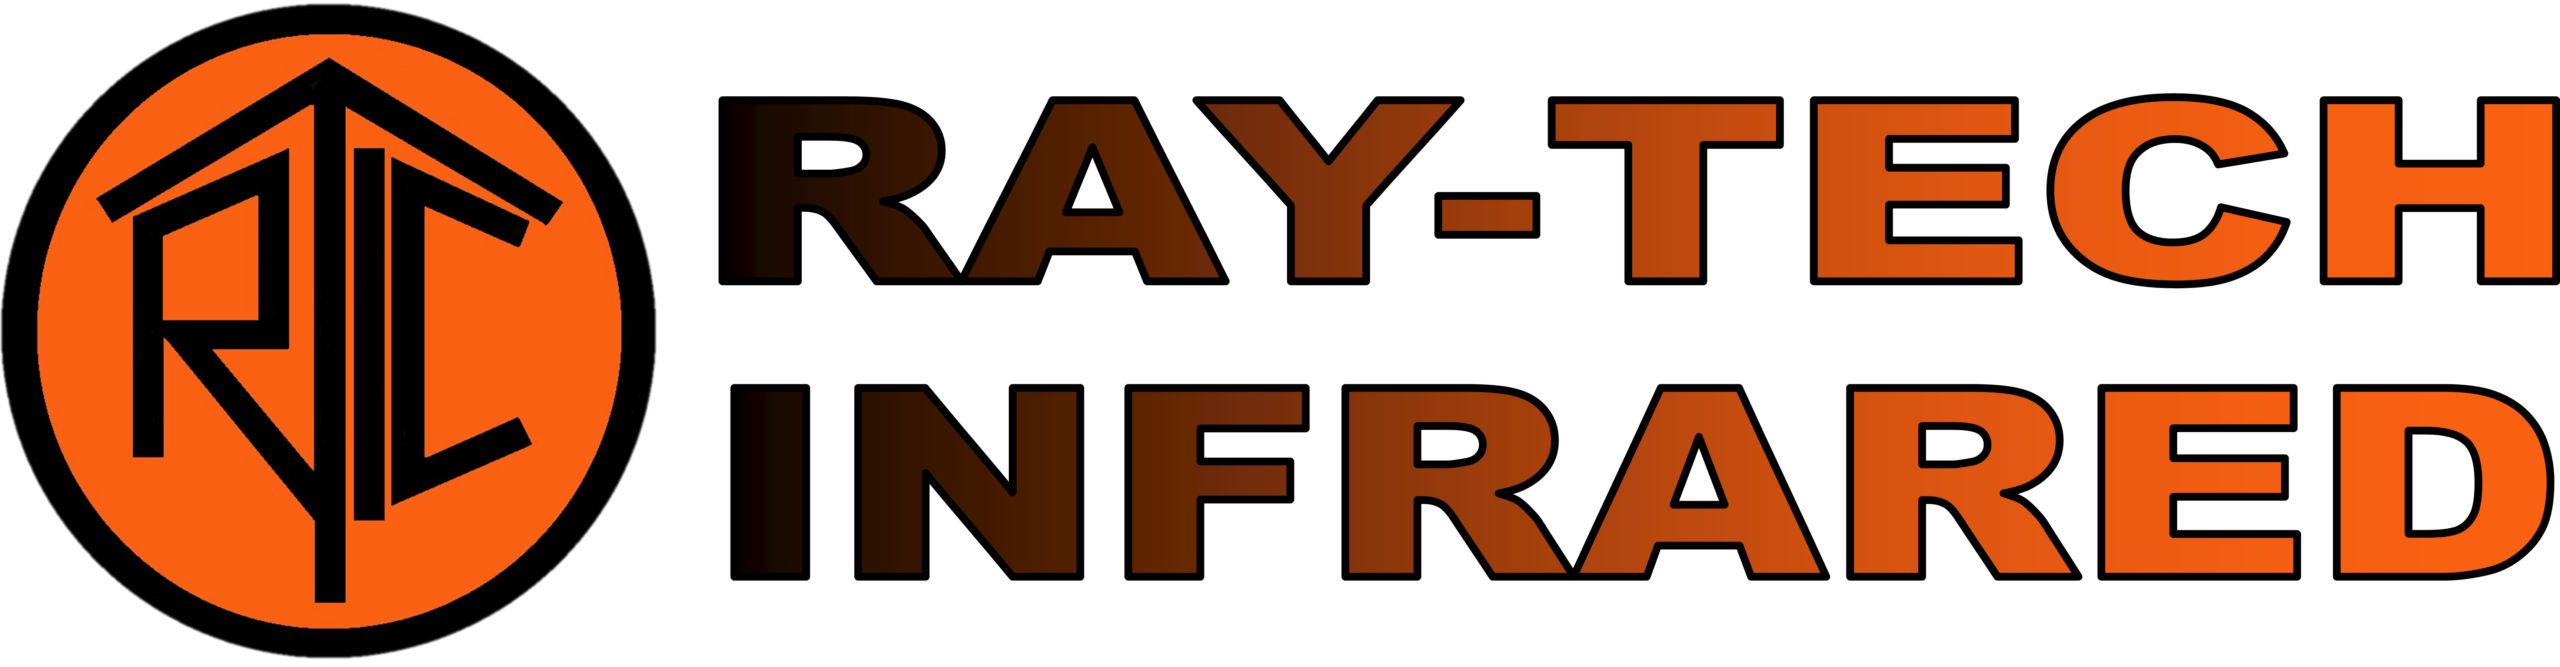 Ray-Tech Infrared